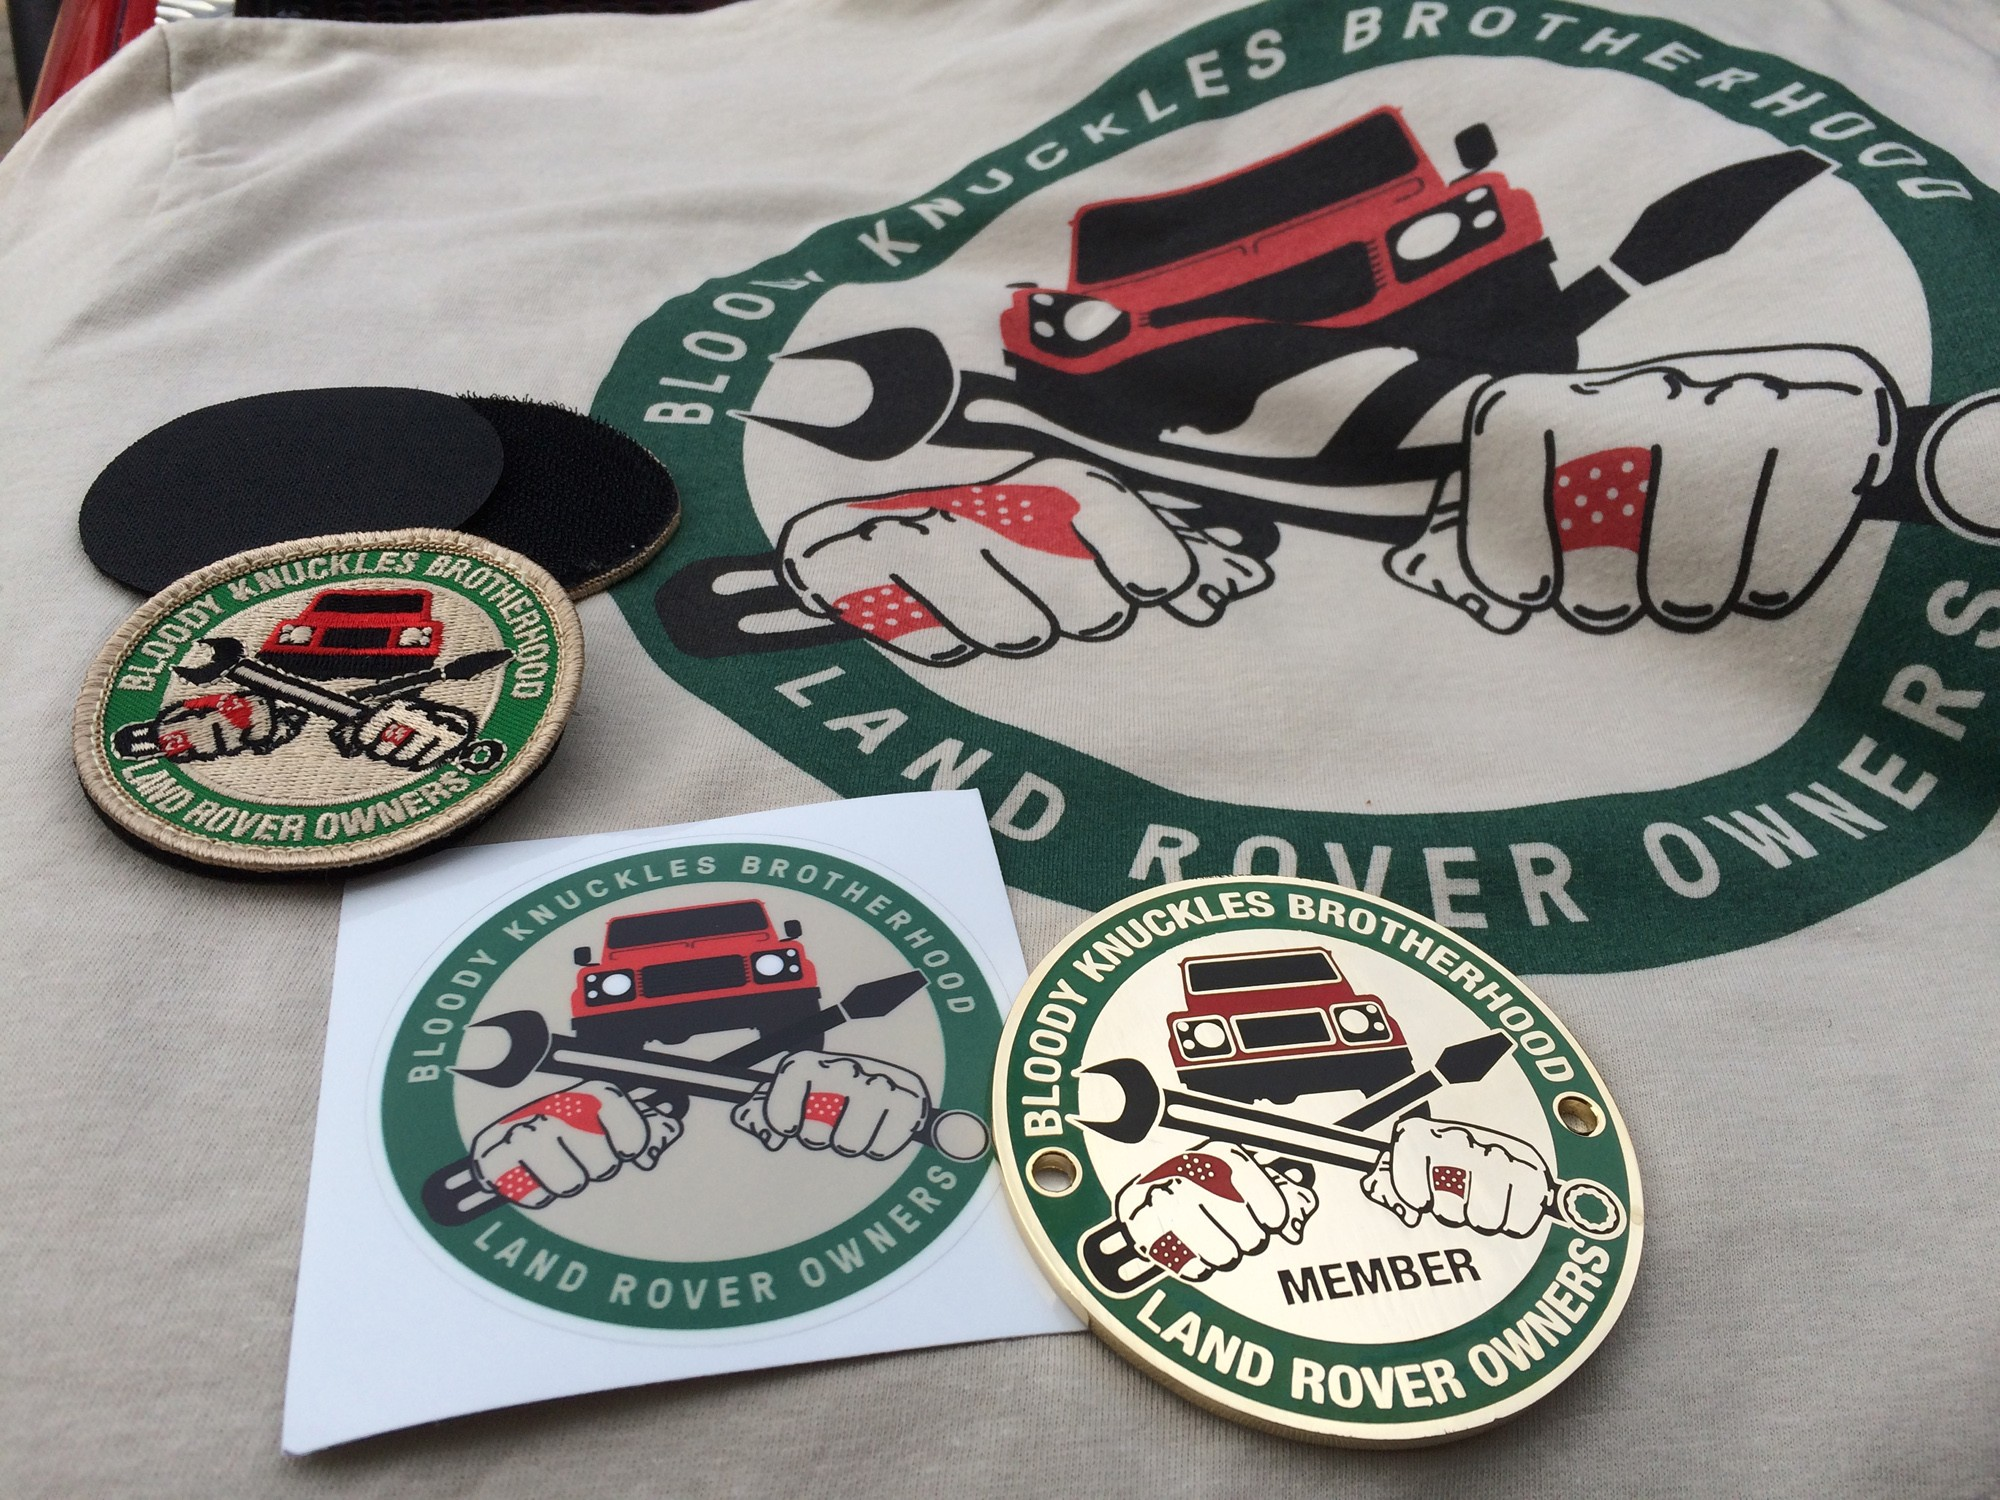 """Bloody Knuckles Brotherhood"" PACKAGE DEAL - Badge, Patch, Sticker, T-Shirt & Hat"